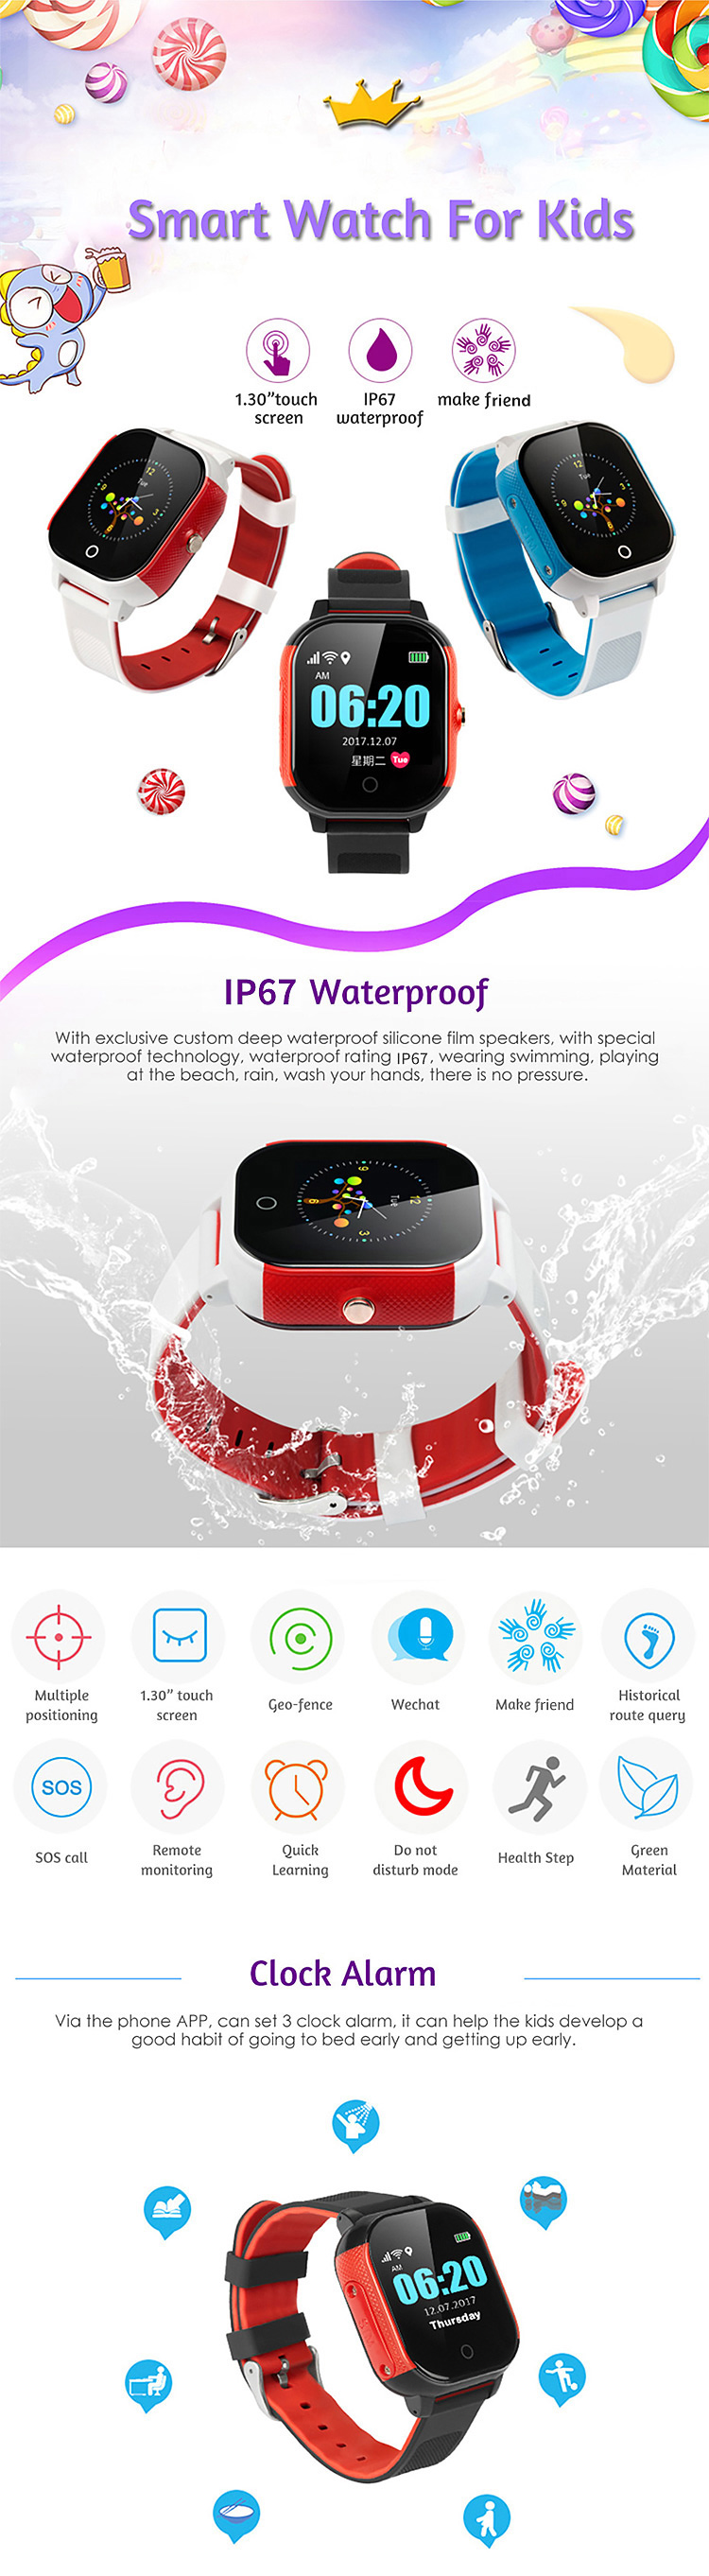 IP68 Deep Waterproof SOS Wifi Child Safety Tracking Device 2g Adult Smart Kids Watch GPS Locator